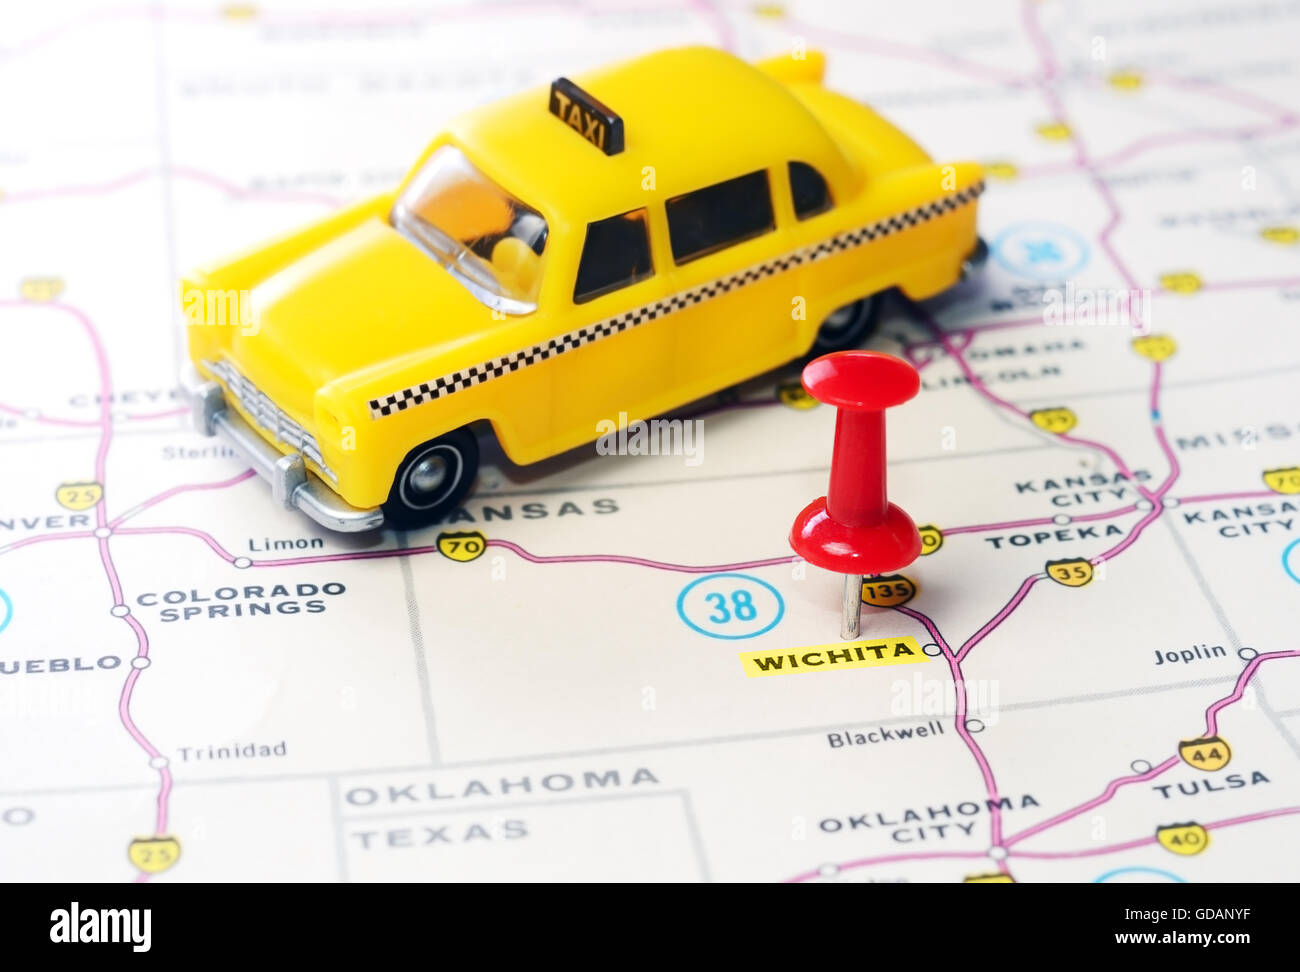 Close Up Of Wichita Kansas Usa Map With Red Pin And Taxi Car Stock Wichita